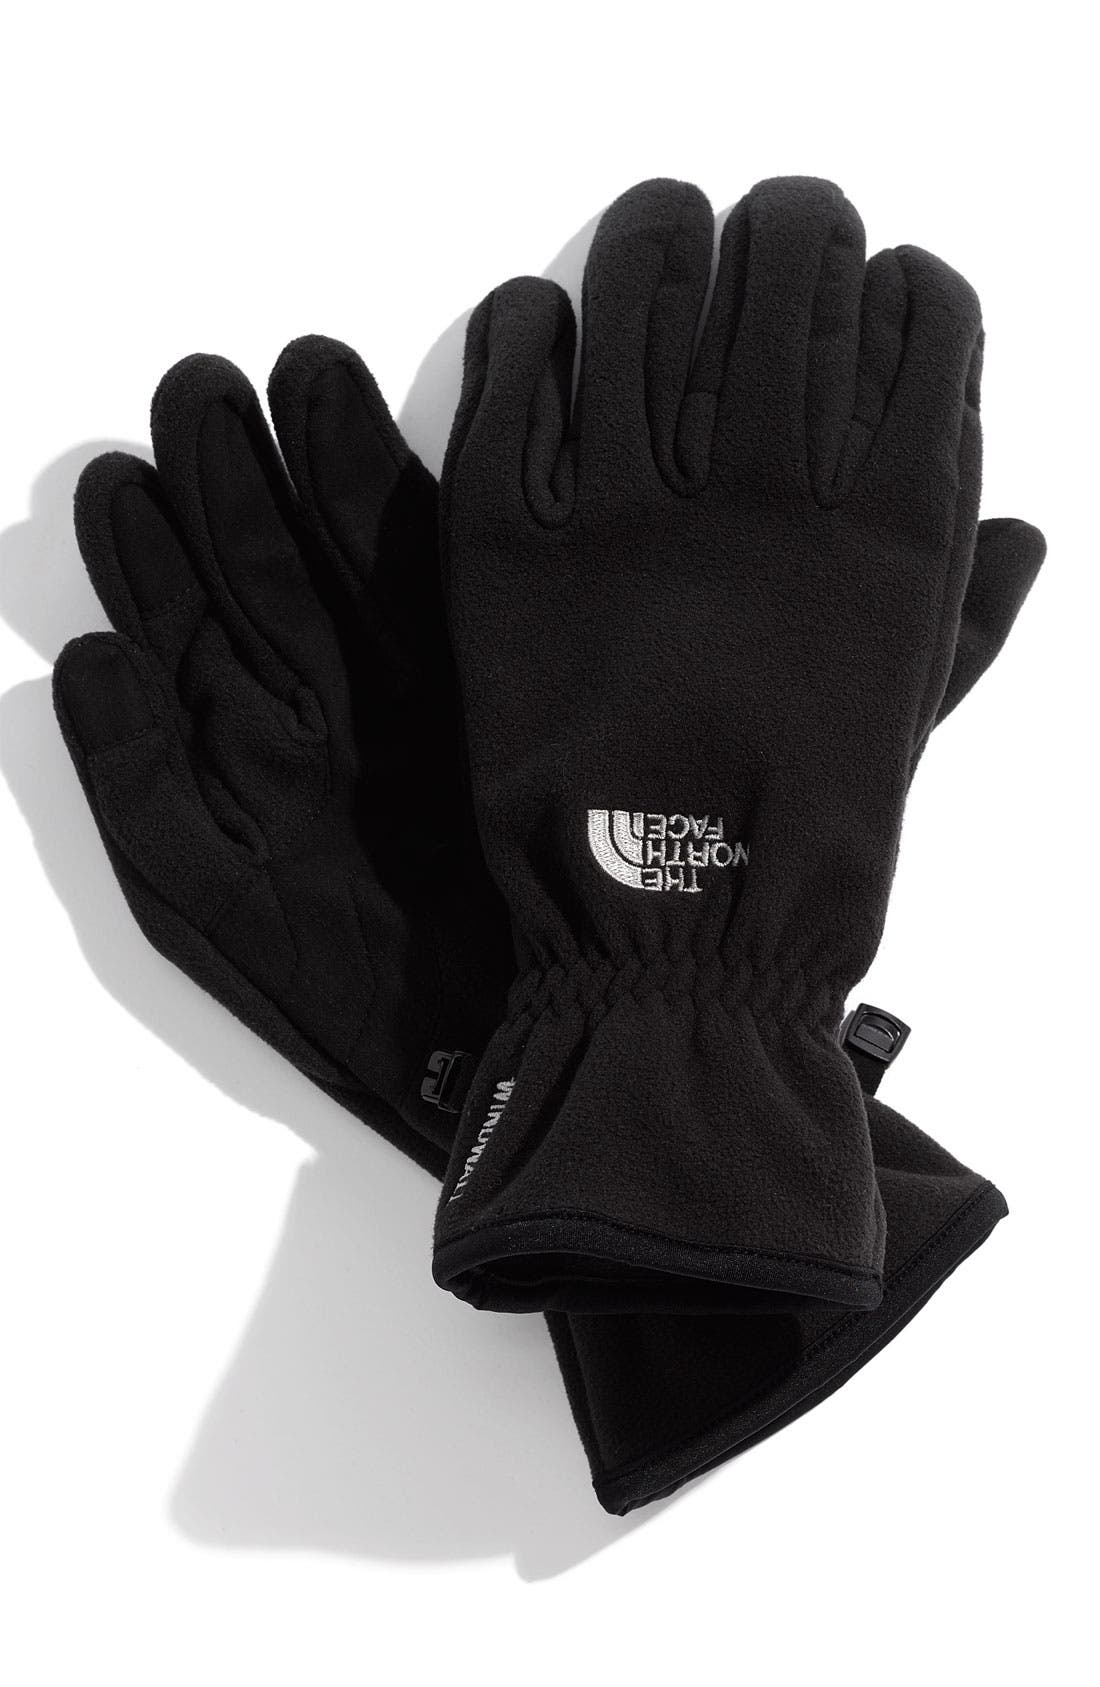 Alternate Image 1 Selected - The North Face 'Windwall' Gloves (Men)